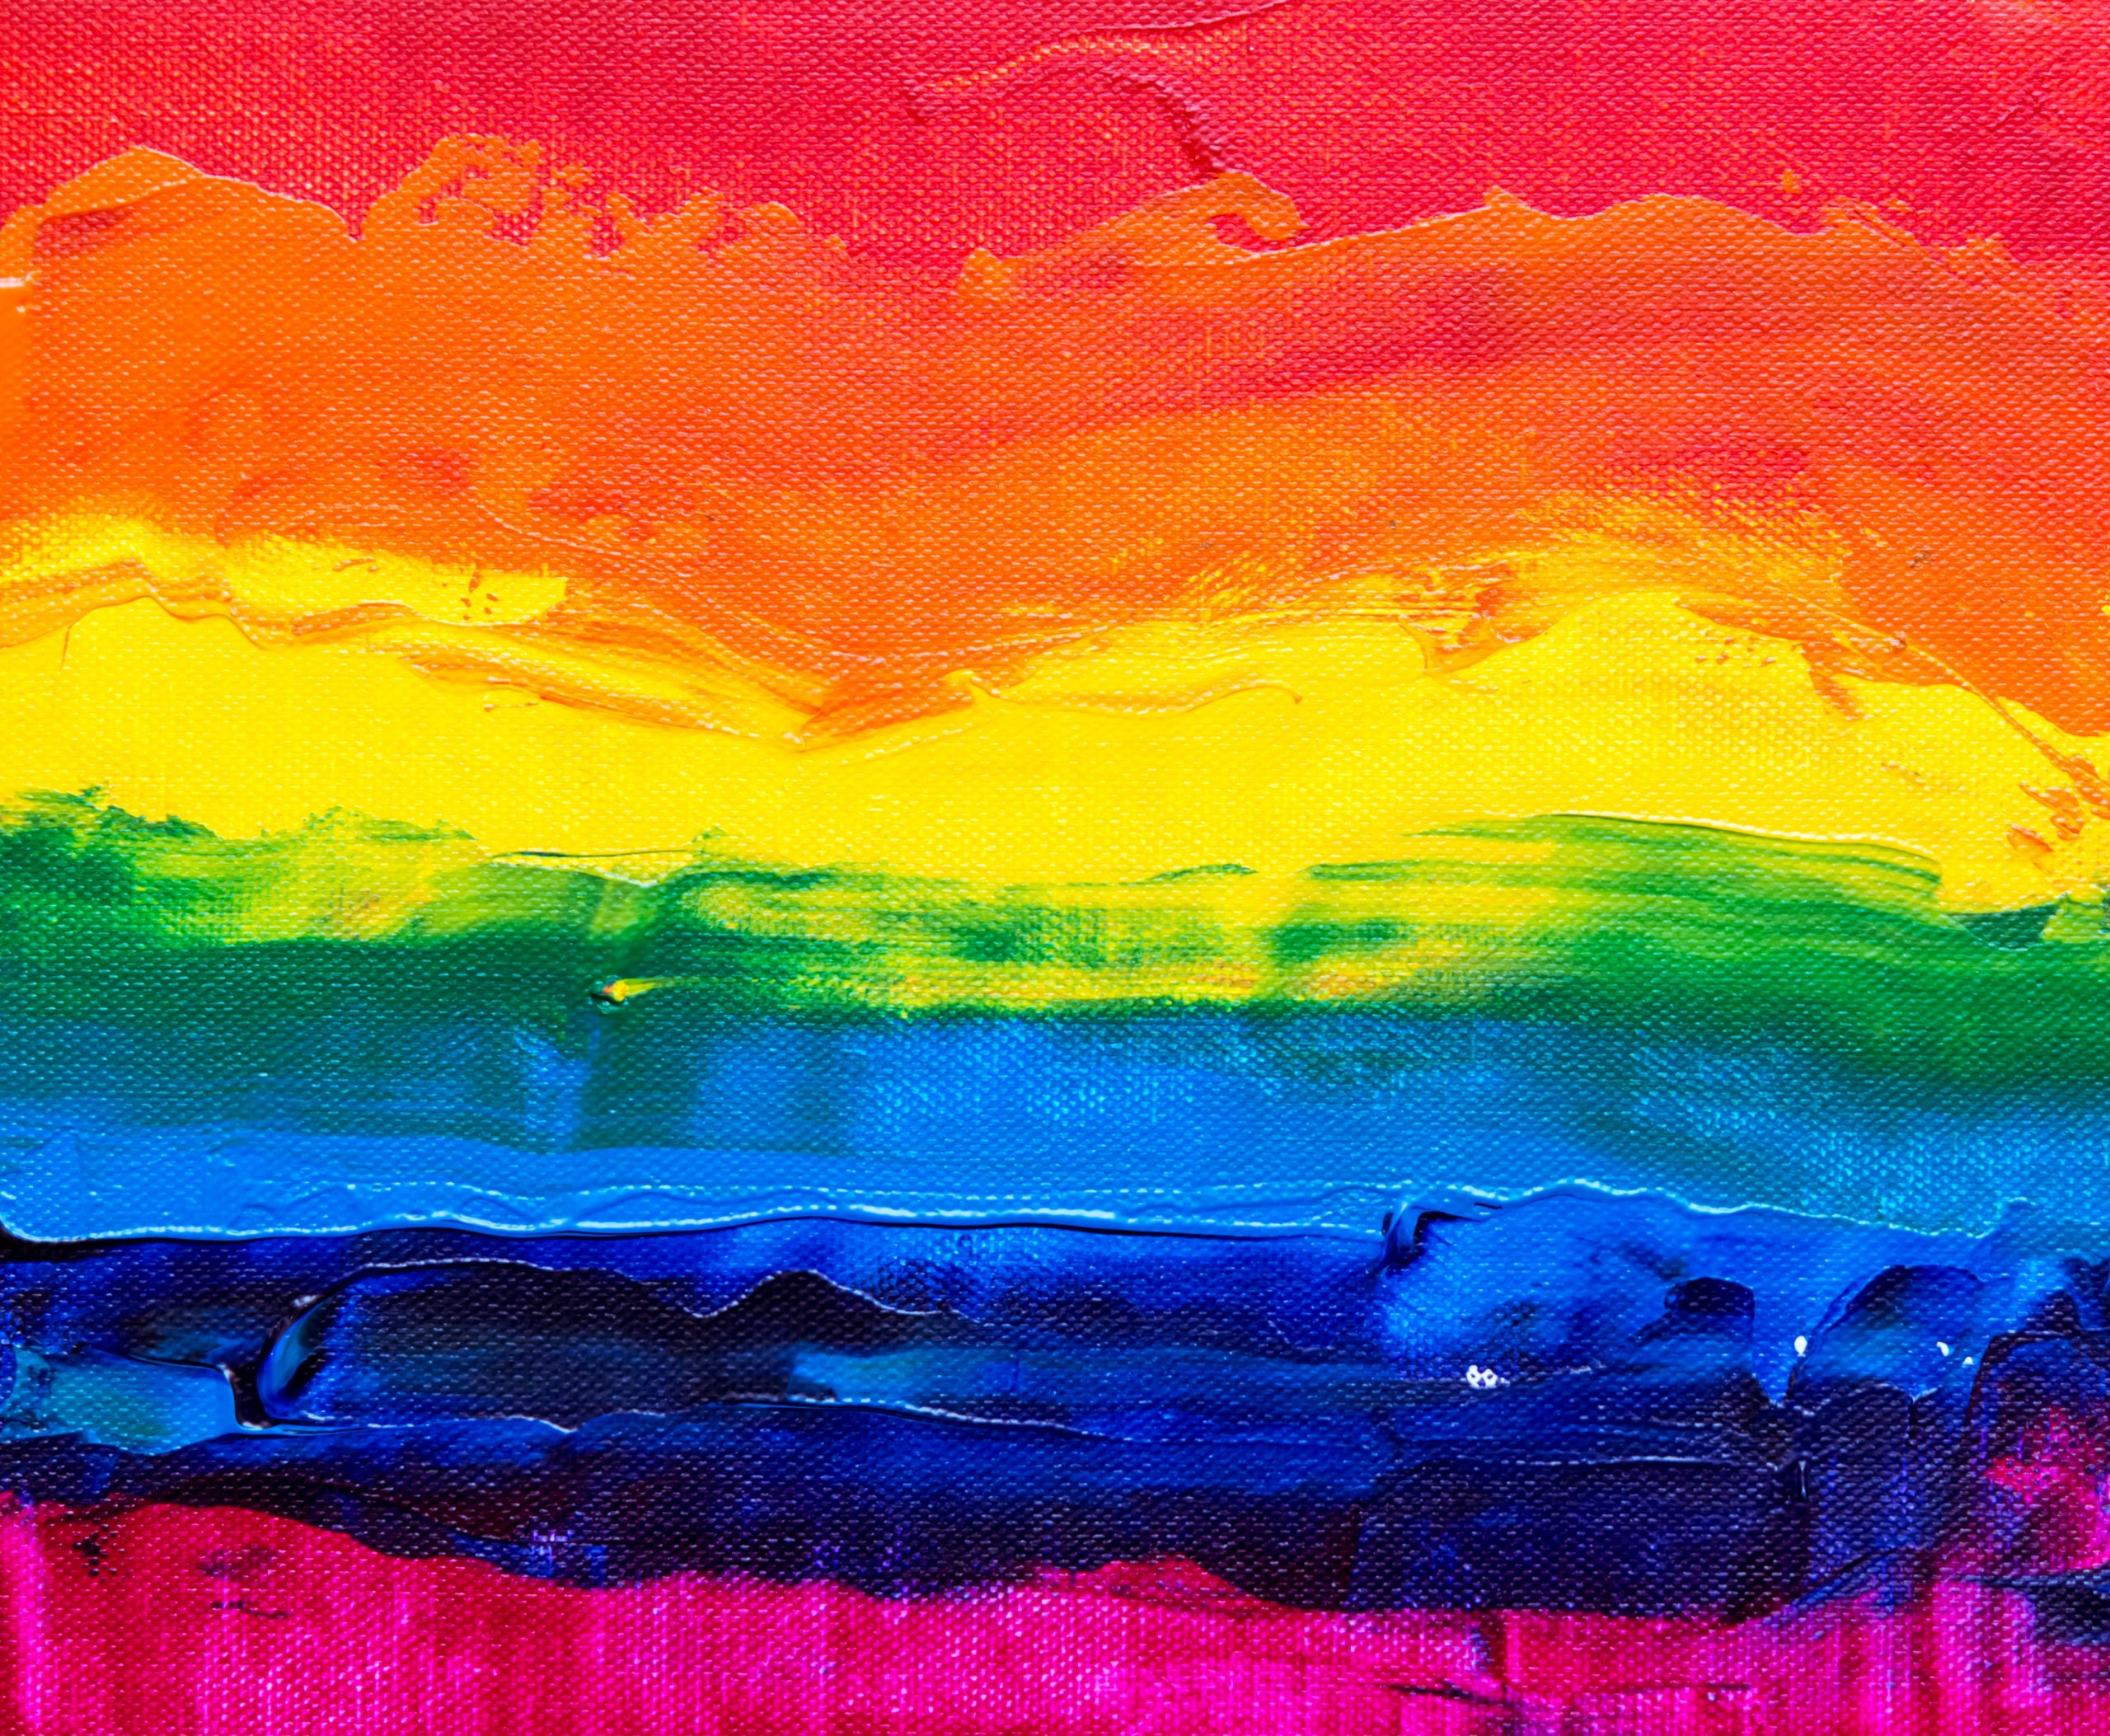 LGBTQIA+ ARTIST EXHIBITION PLANNED FOR PRIDE MONTH